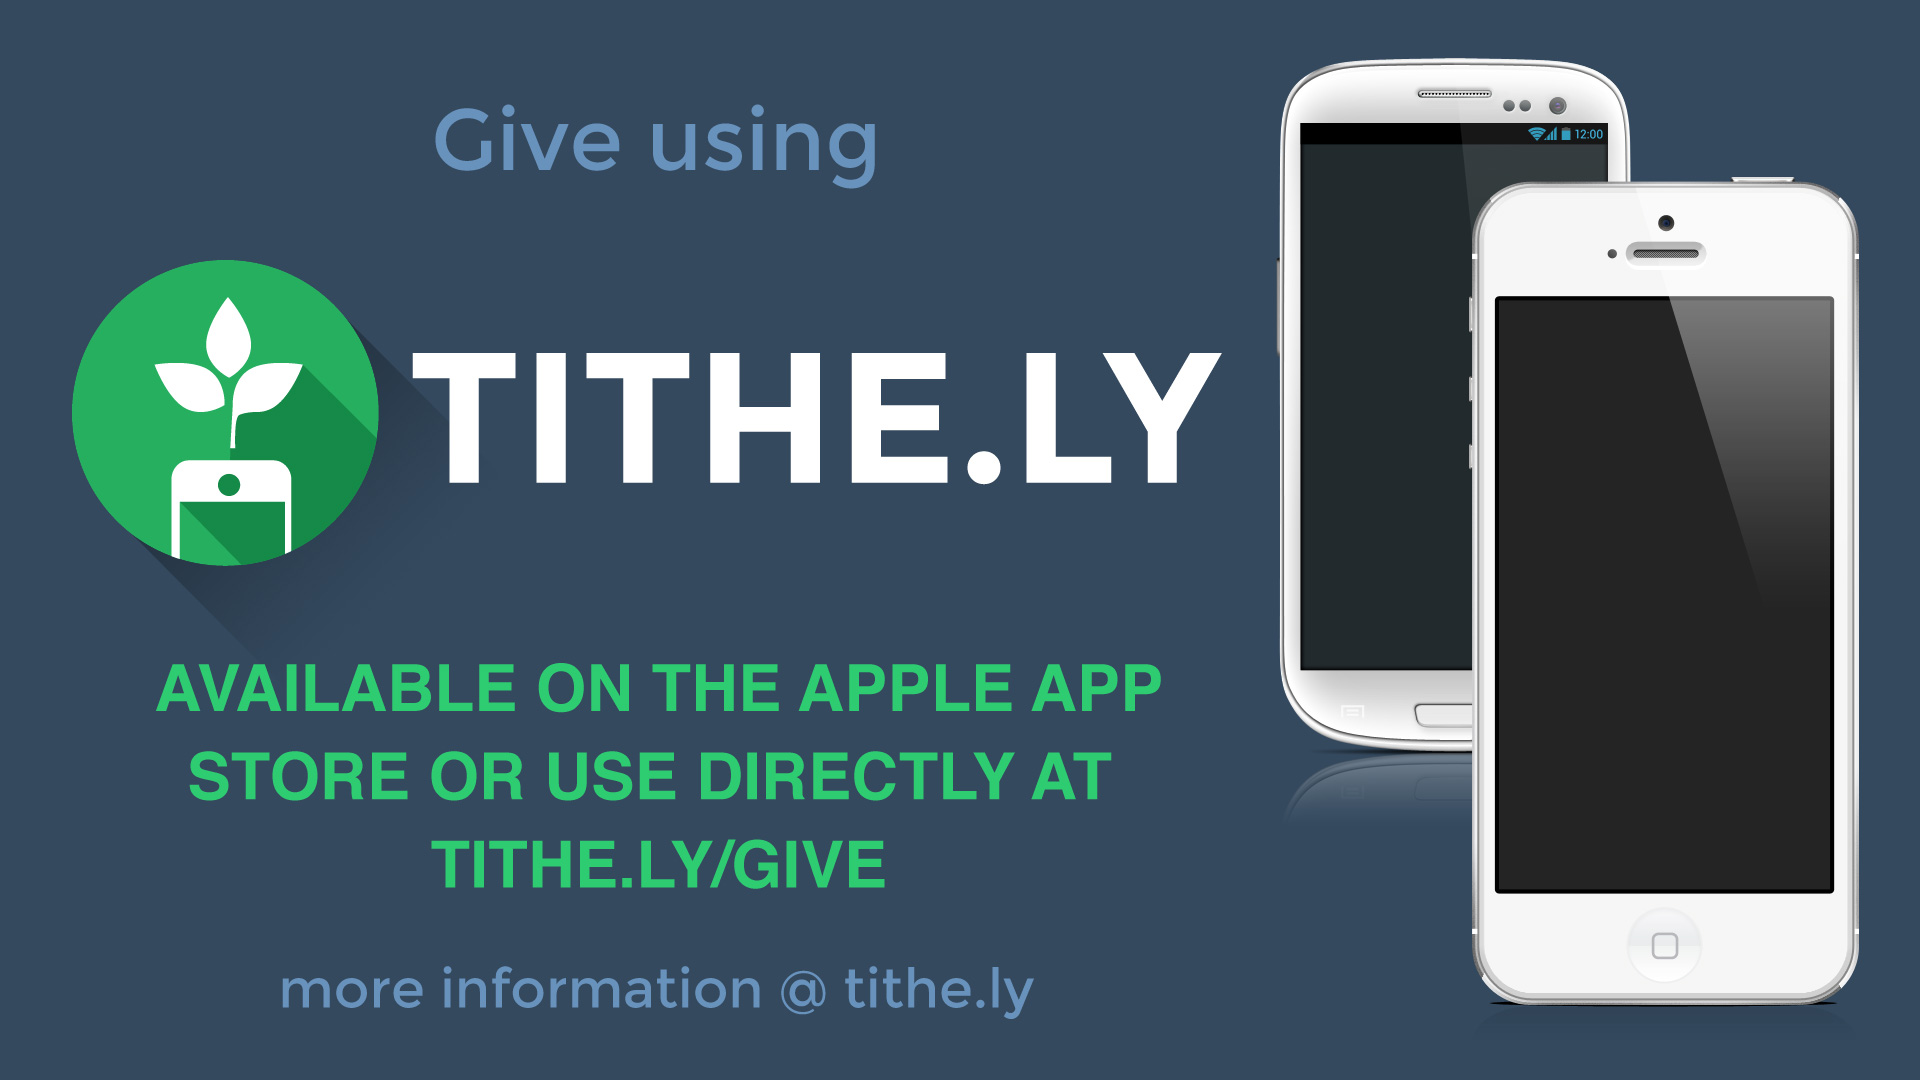 Give using Tithe.ly